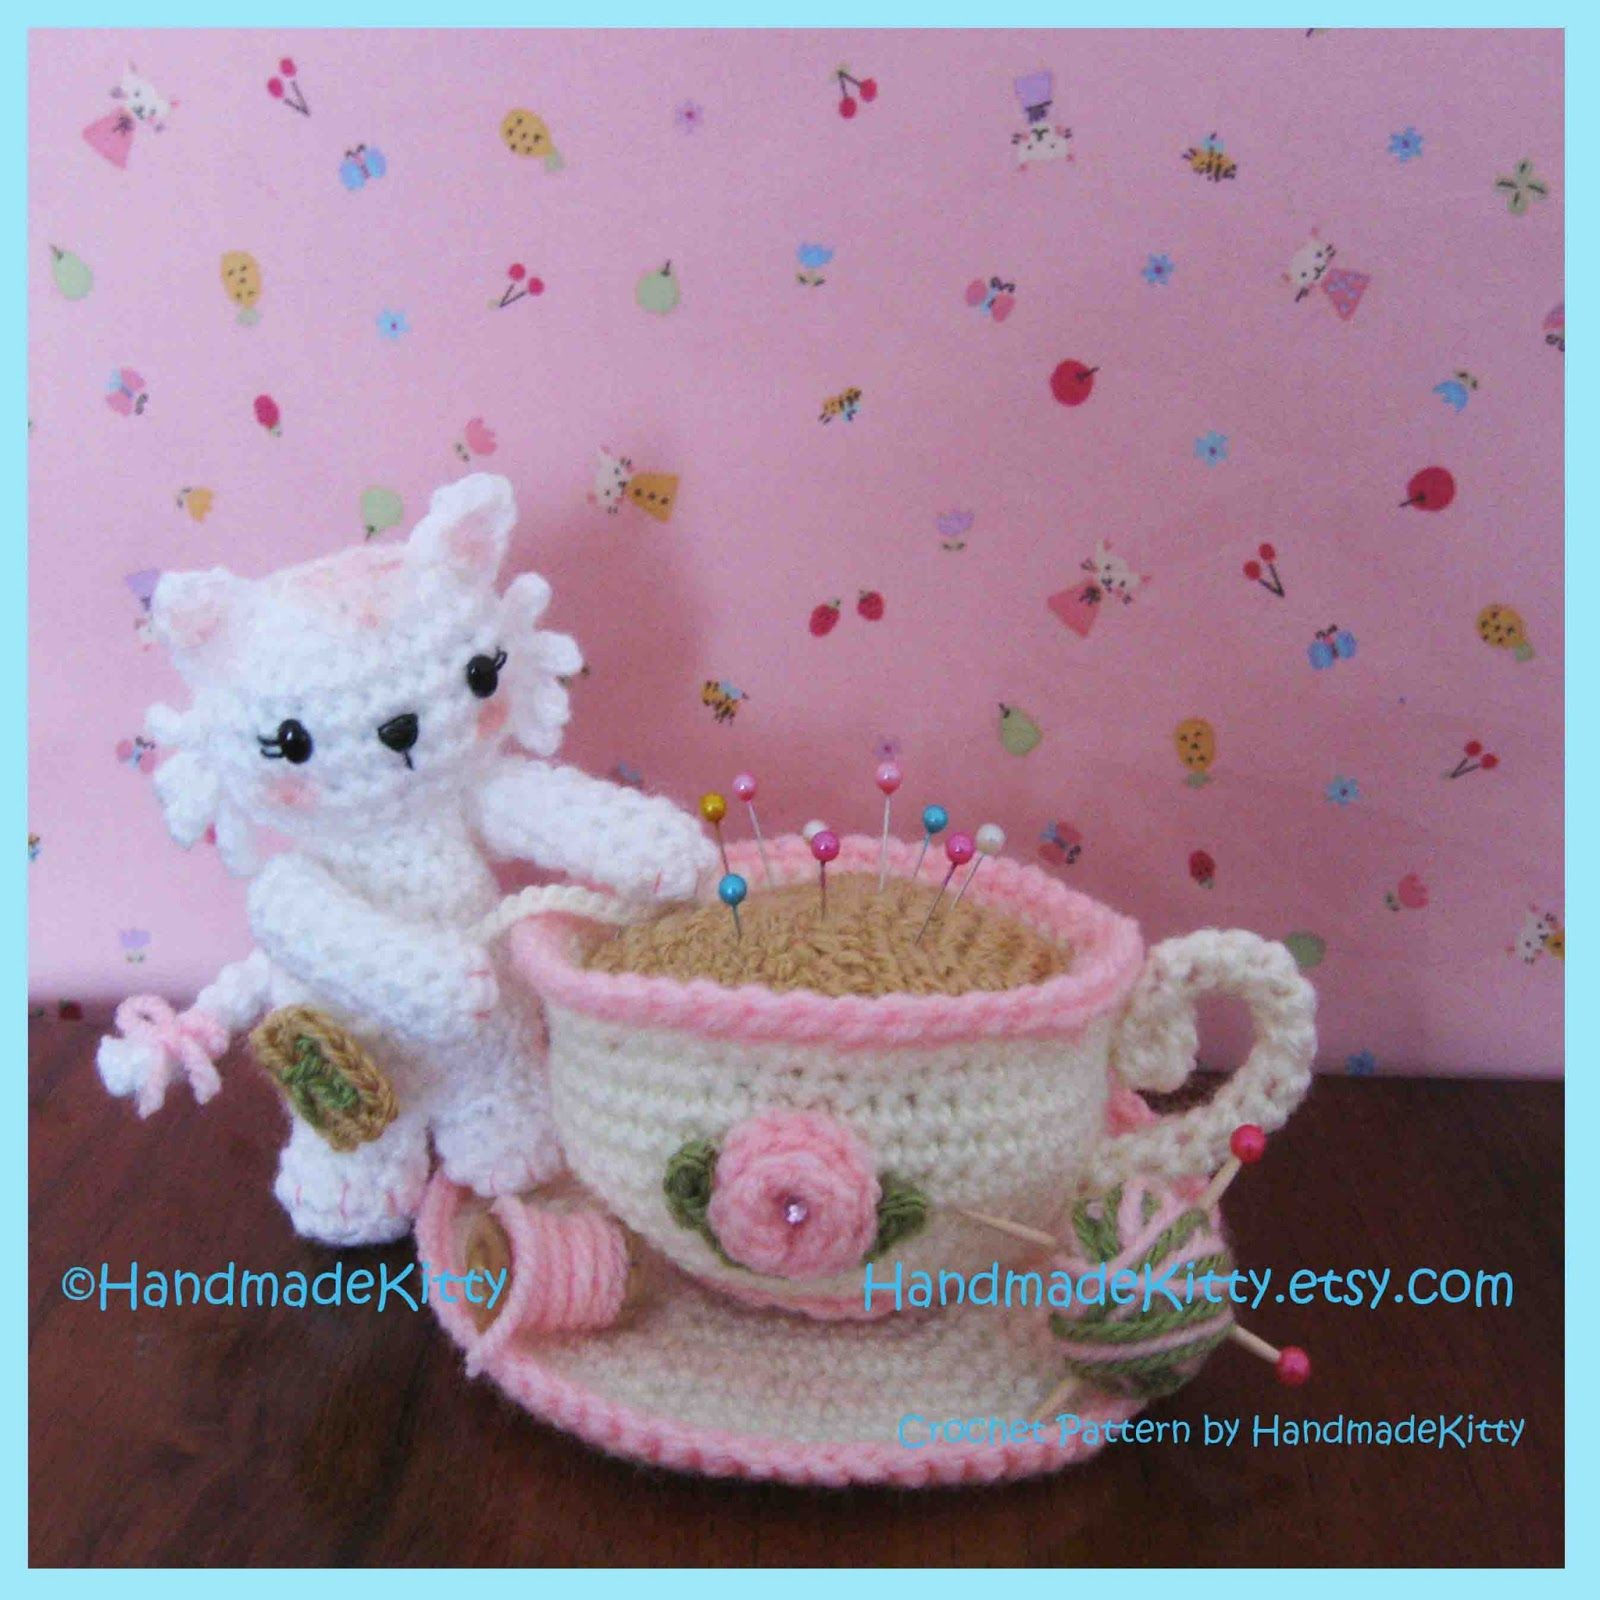 HandmadeKitty: Kitty Playing with Pincushion Teacup Amigurumi Crochet Pattern by Handmadekitty